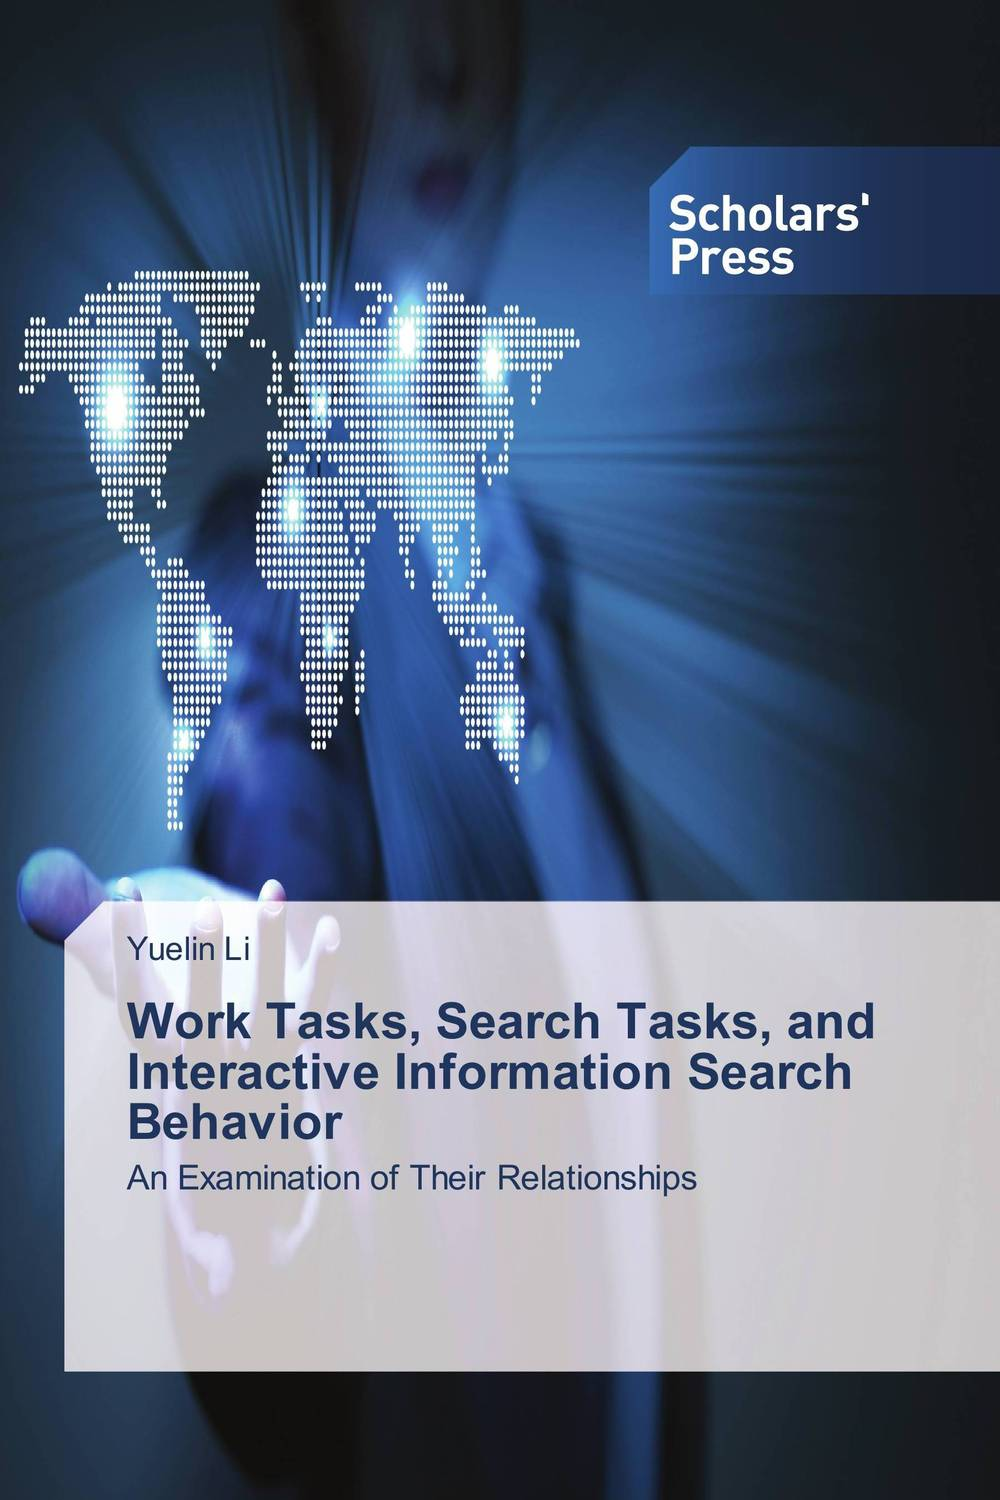 Work Tasks, Search Tasks, and Interactive Information Search Behavior